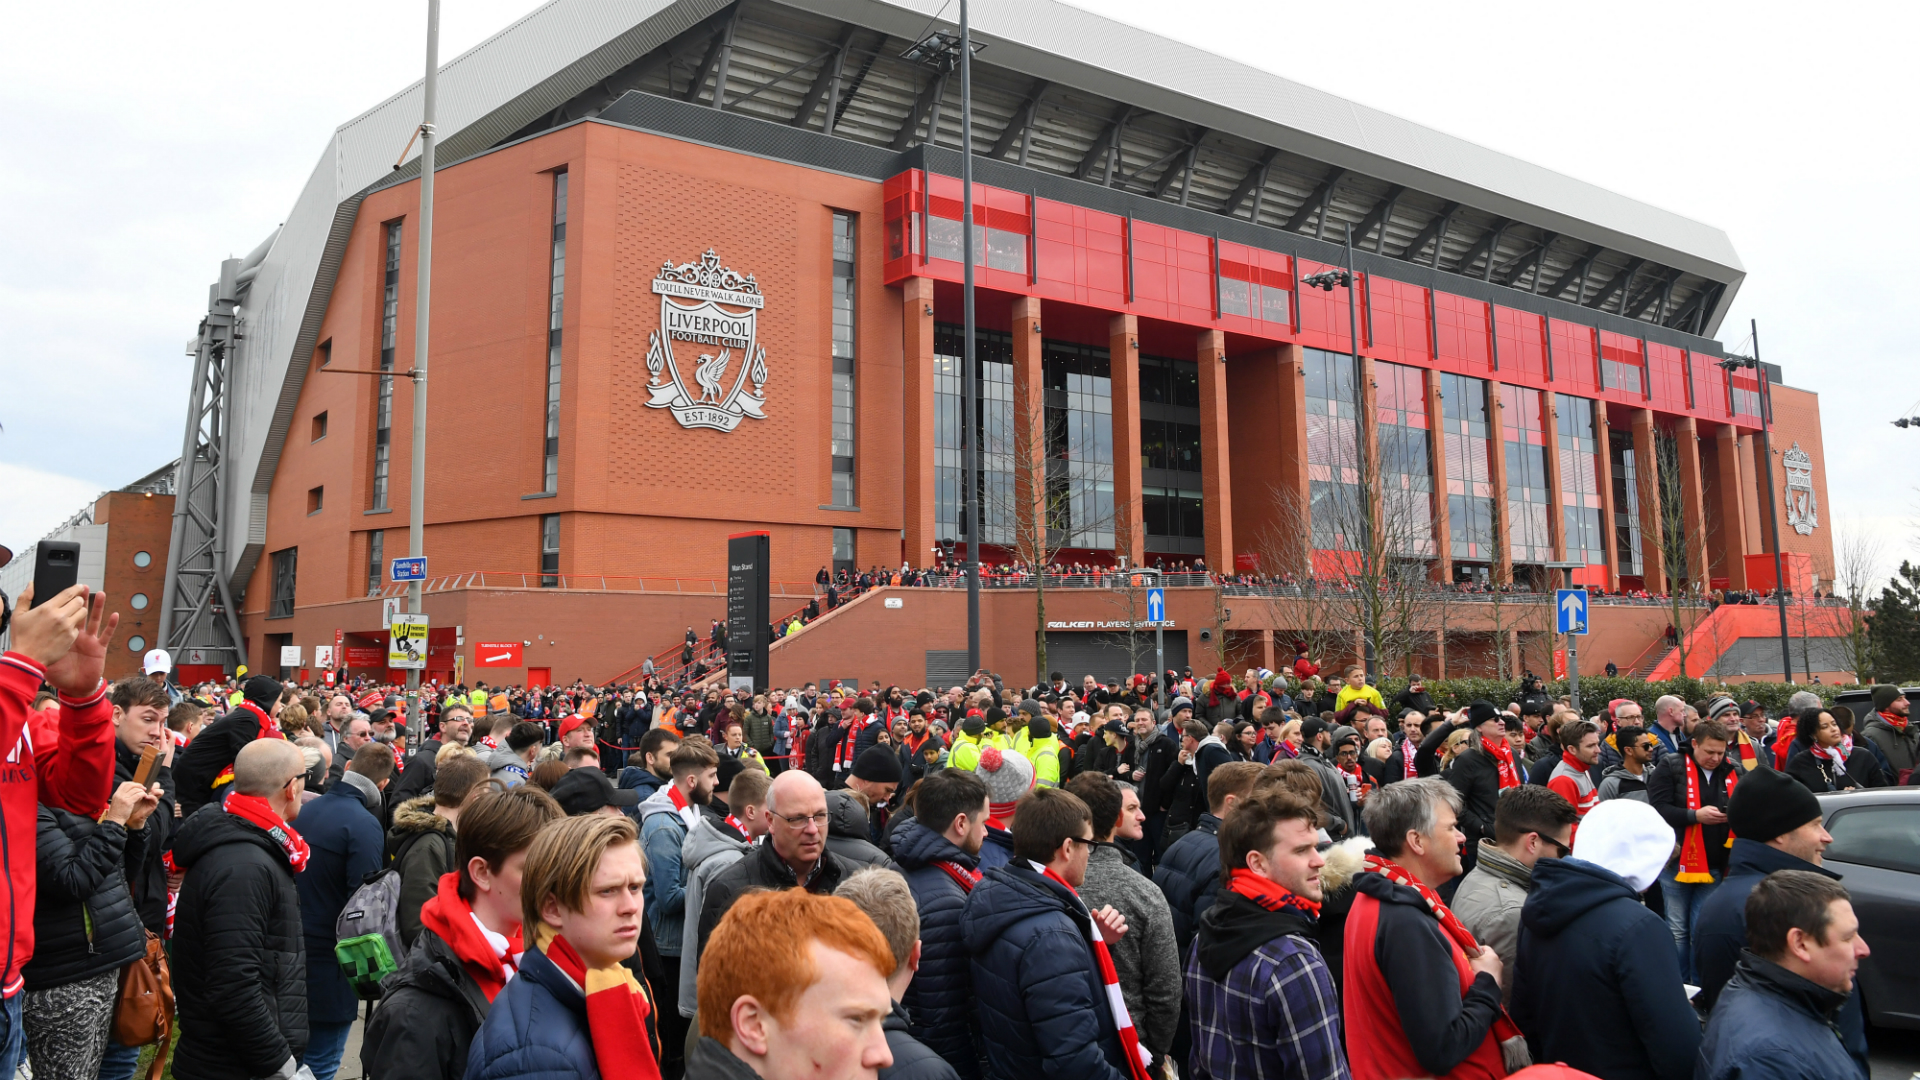 Liverpool announce 'ambitious' Anfield redevelopment plans